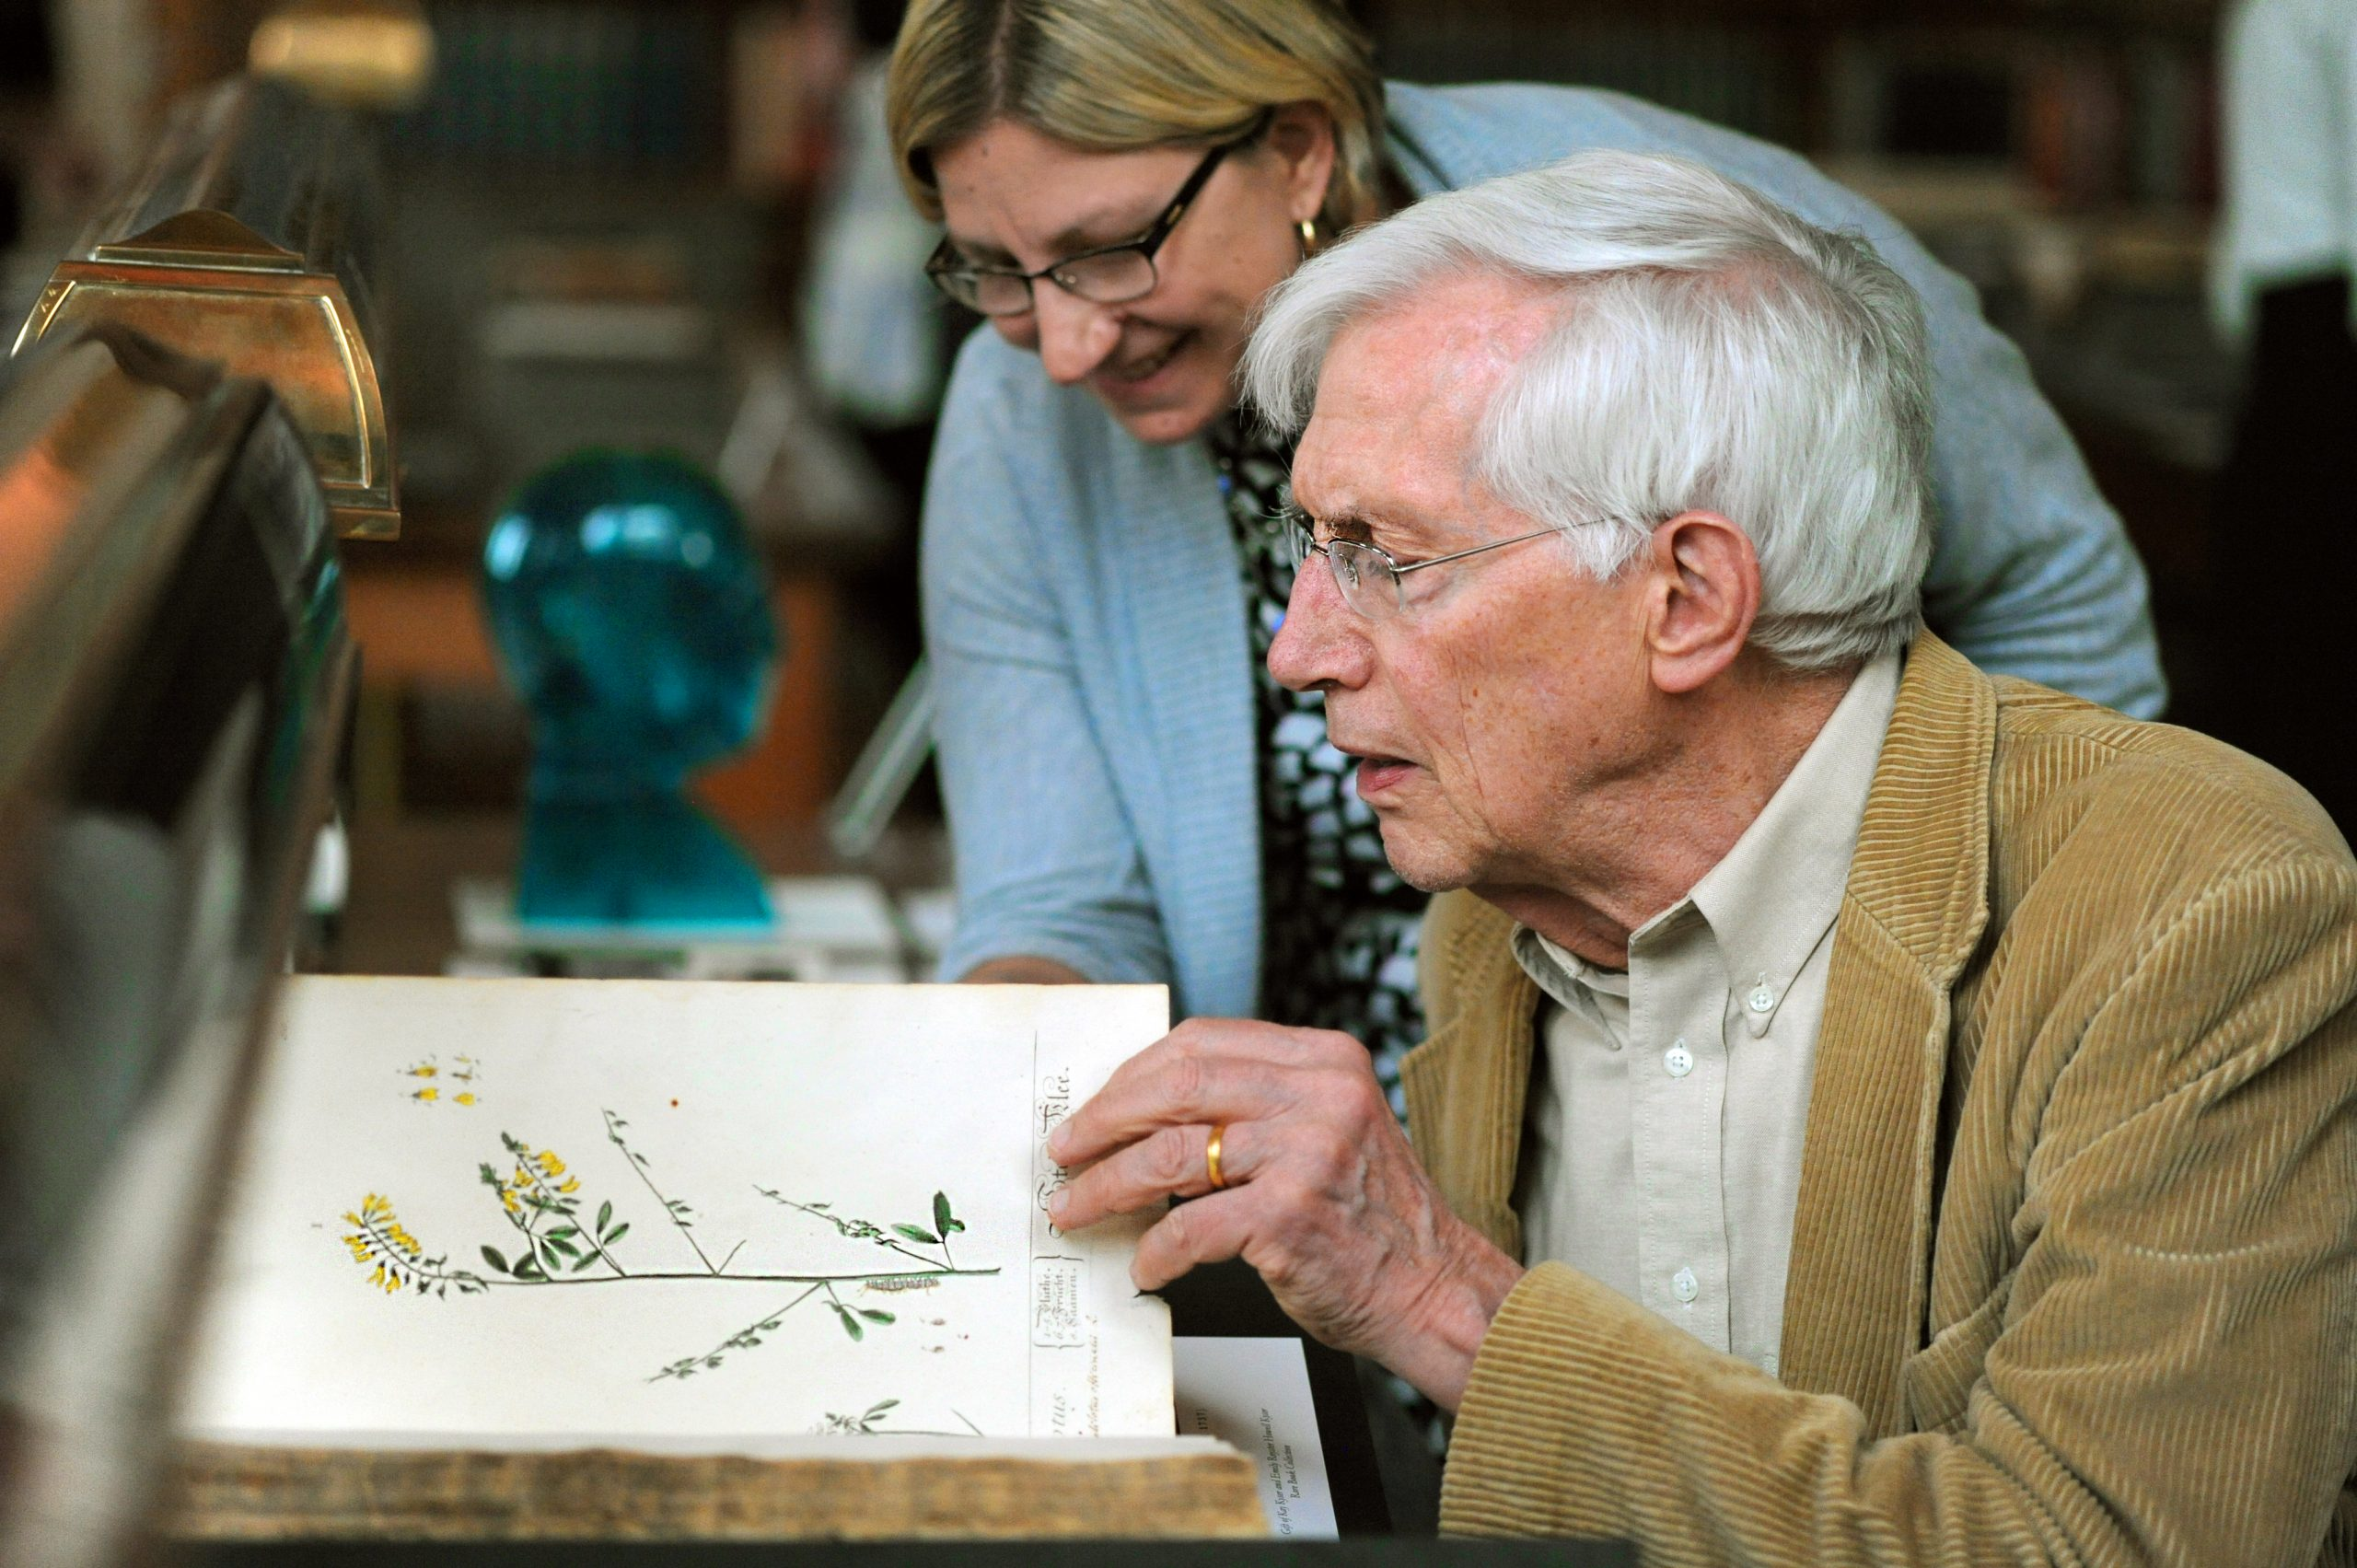 Librarian Dawne Lucas and professor emeritus Michael McVaugh looking at a book of flowers